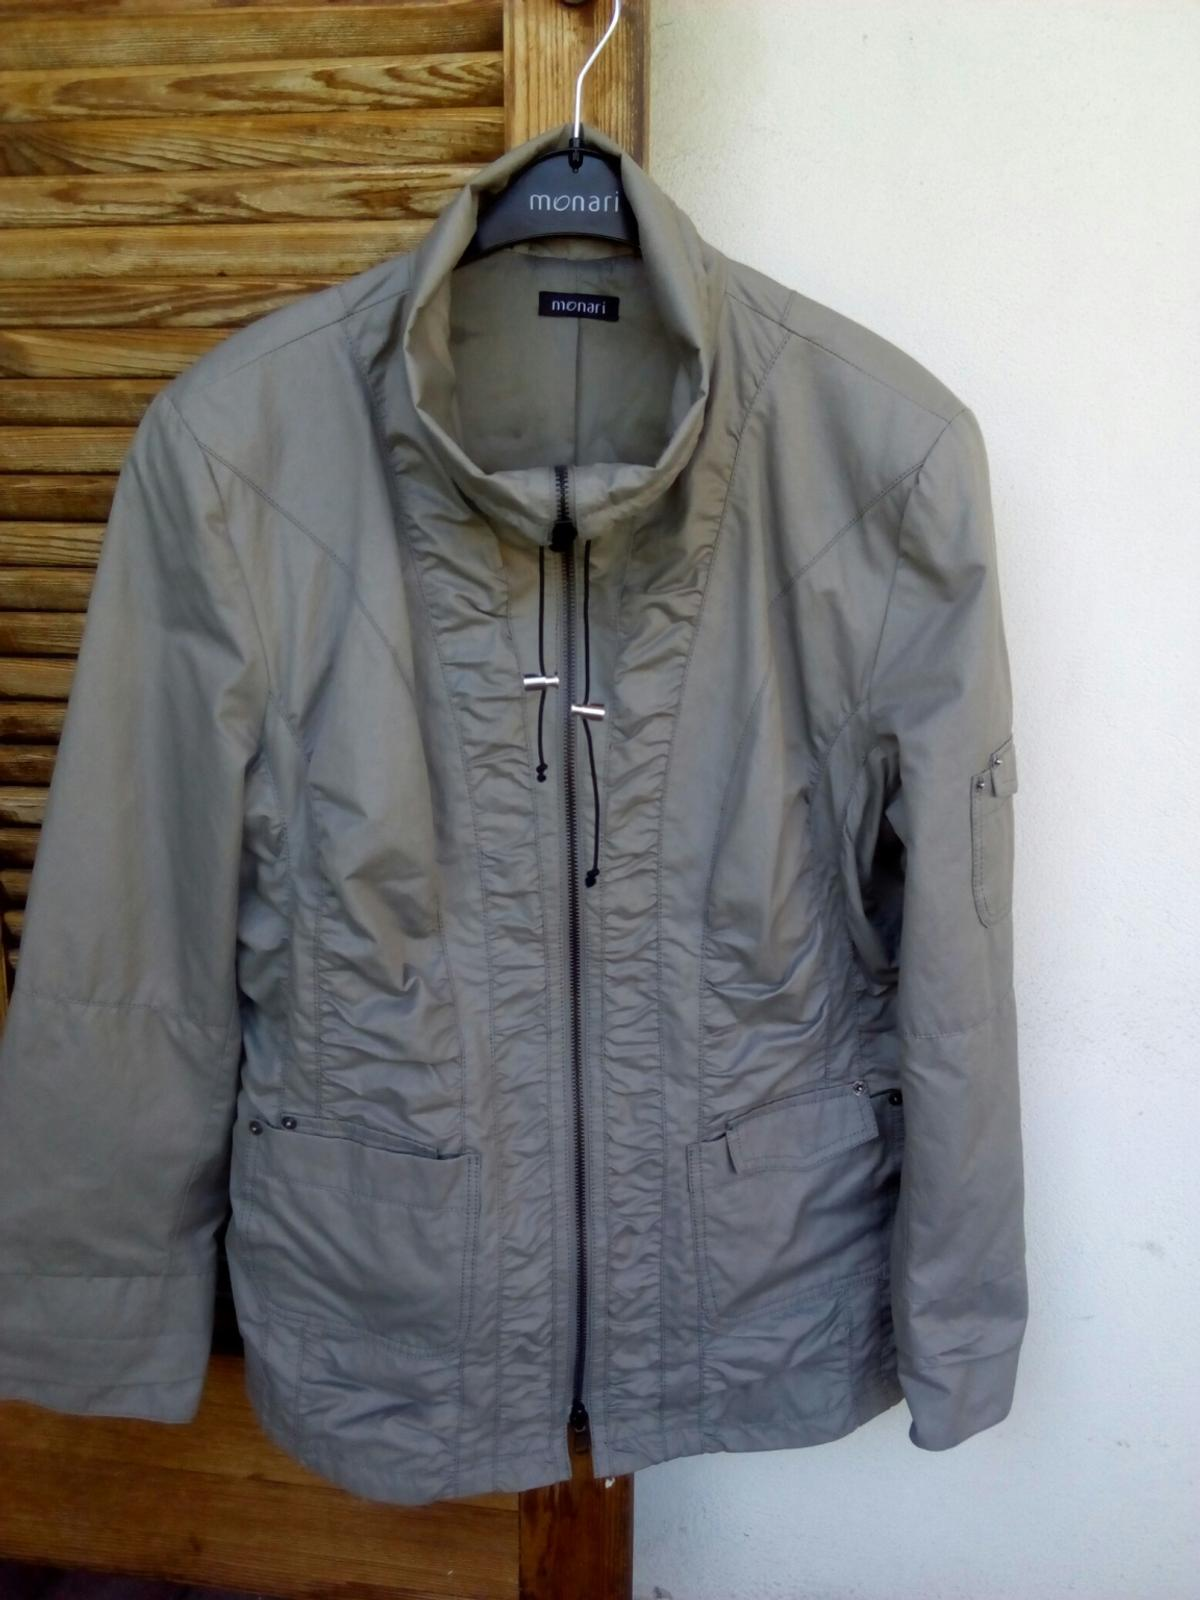 low priced 2558c a9372 Damen Jacke Monari Gr .44 in 6890 Lustenau für 20,00 ...